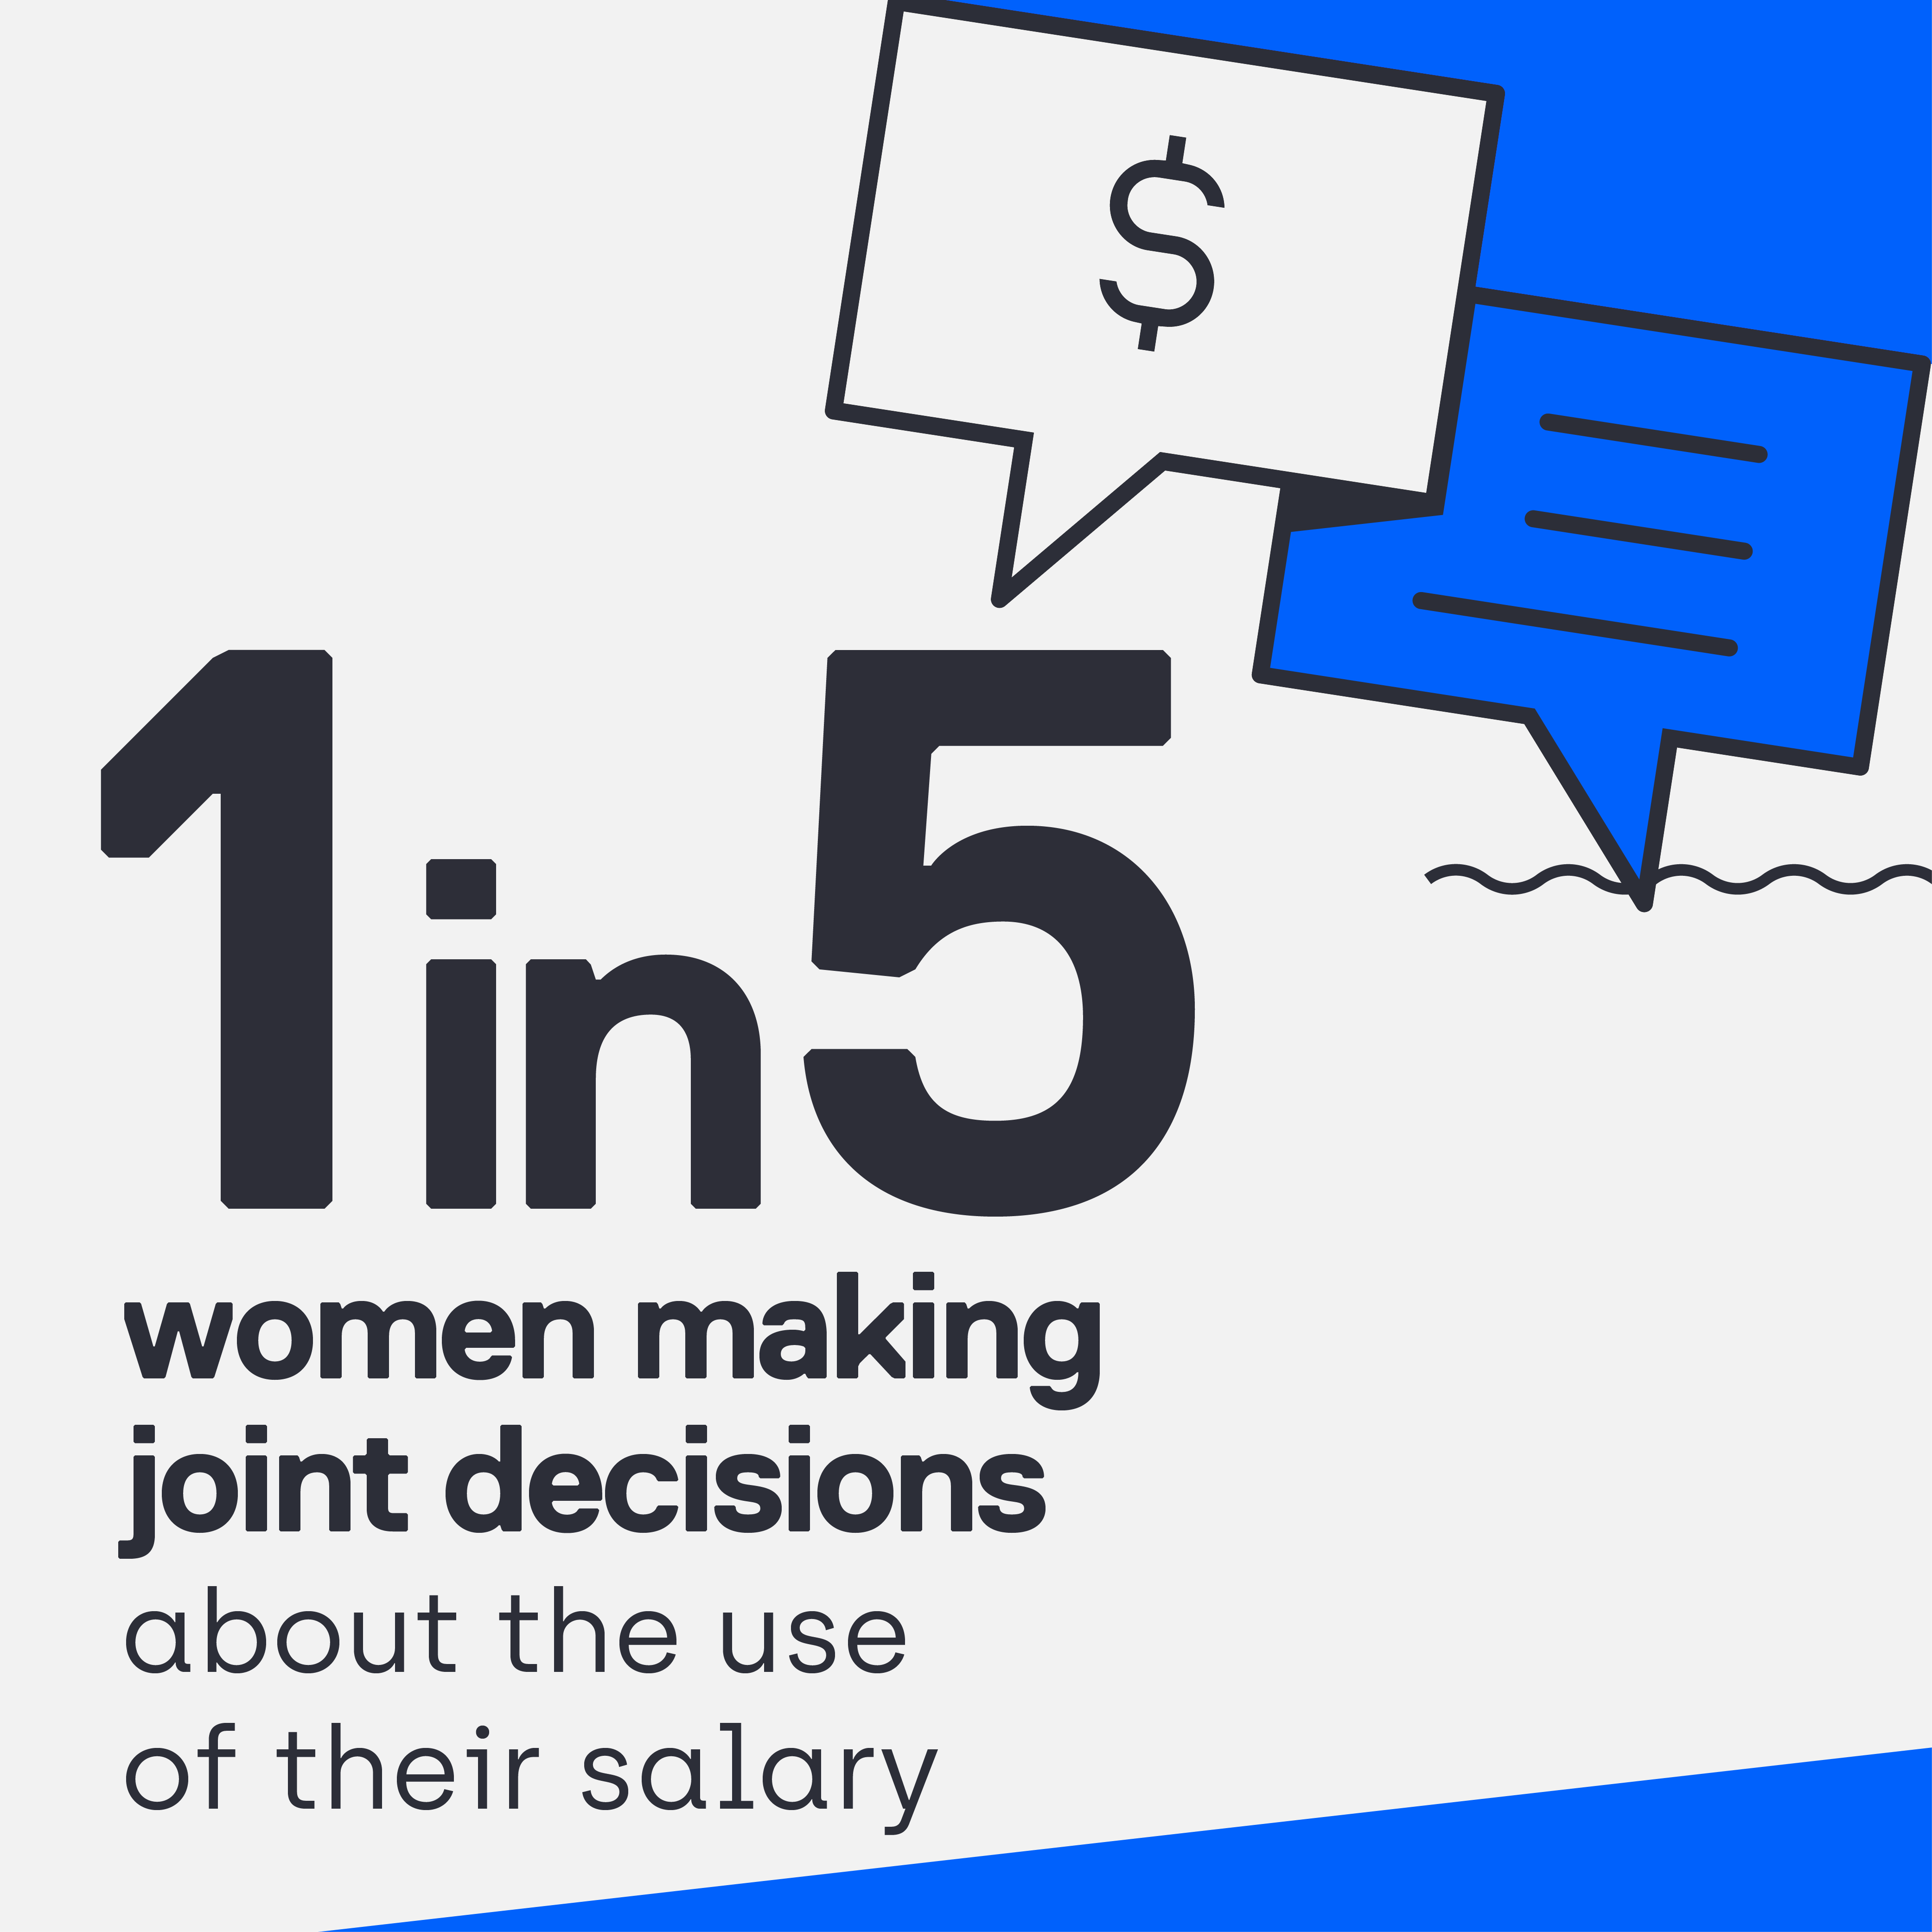 Infographic: 1 in 5 women making joint decisions about the use of their salary